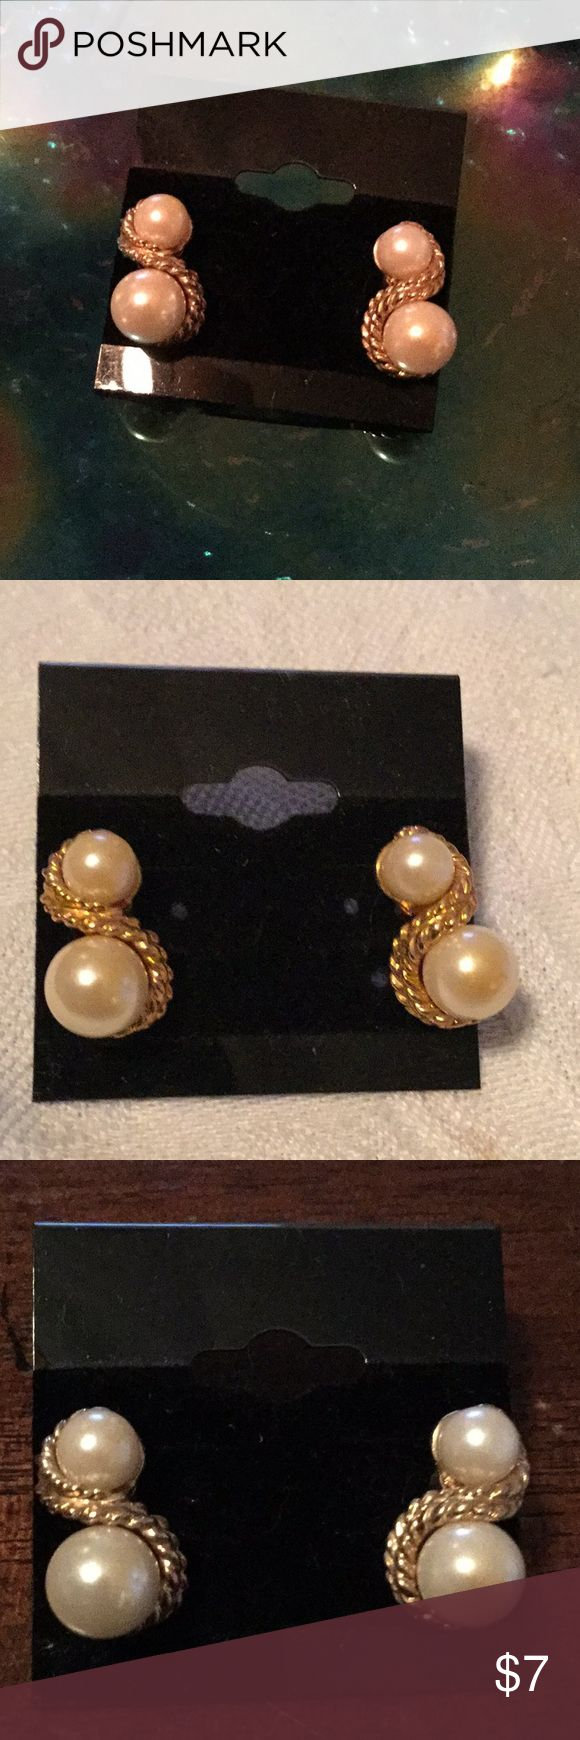 🌹Gorgeous NWOT Double Faux Pearl Earrings 🌹 🌹NWOT Gorgeous Double Faux Pearl Pierced Earrings 🌹Great Addition to Your Wardrobe or Makes Nice Gift 🎁  I Live in Smoke Free Home 🌹 I Love ❤️ to Do Deals & I Love ❤️ to Make Bundles 🌹 Thanks For Looking Jewelry Earrings